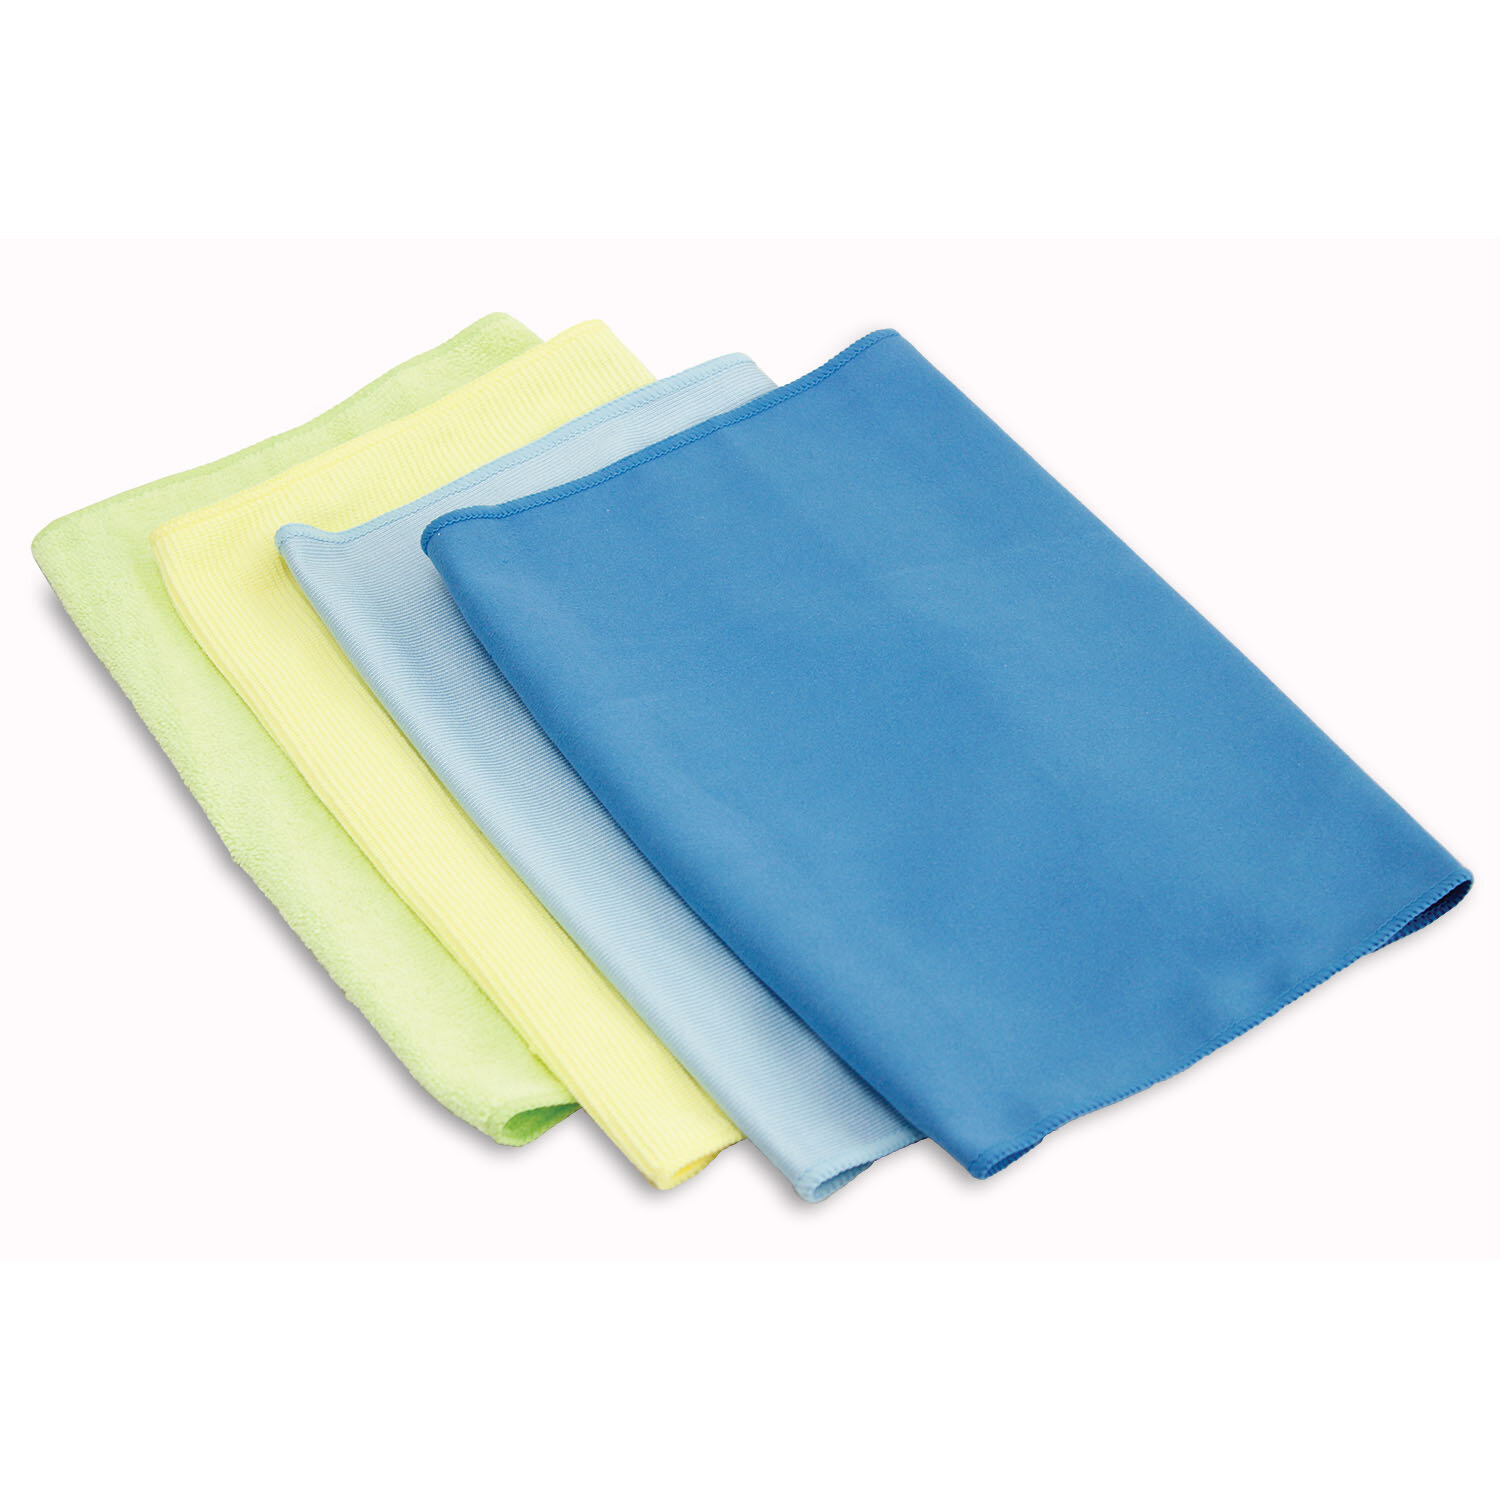 Microfiber Cloth Set: Libman Microfiber Cleaning Cloth Set Of 4